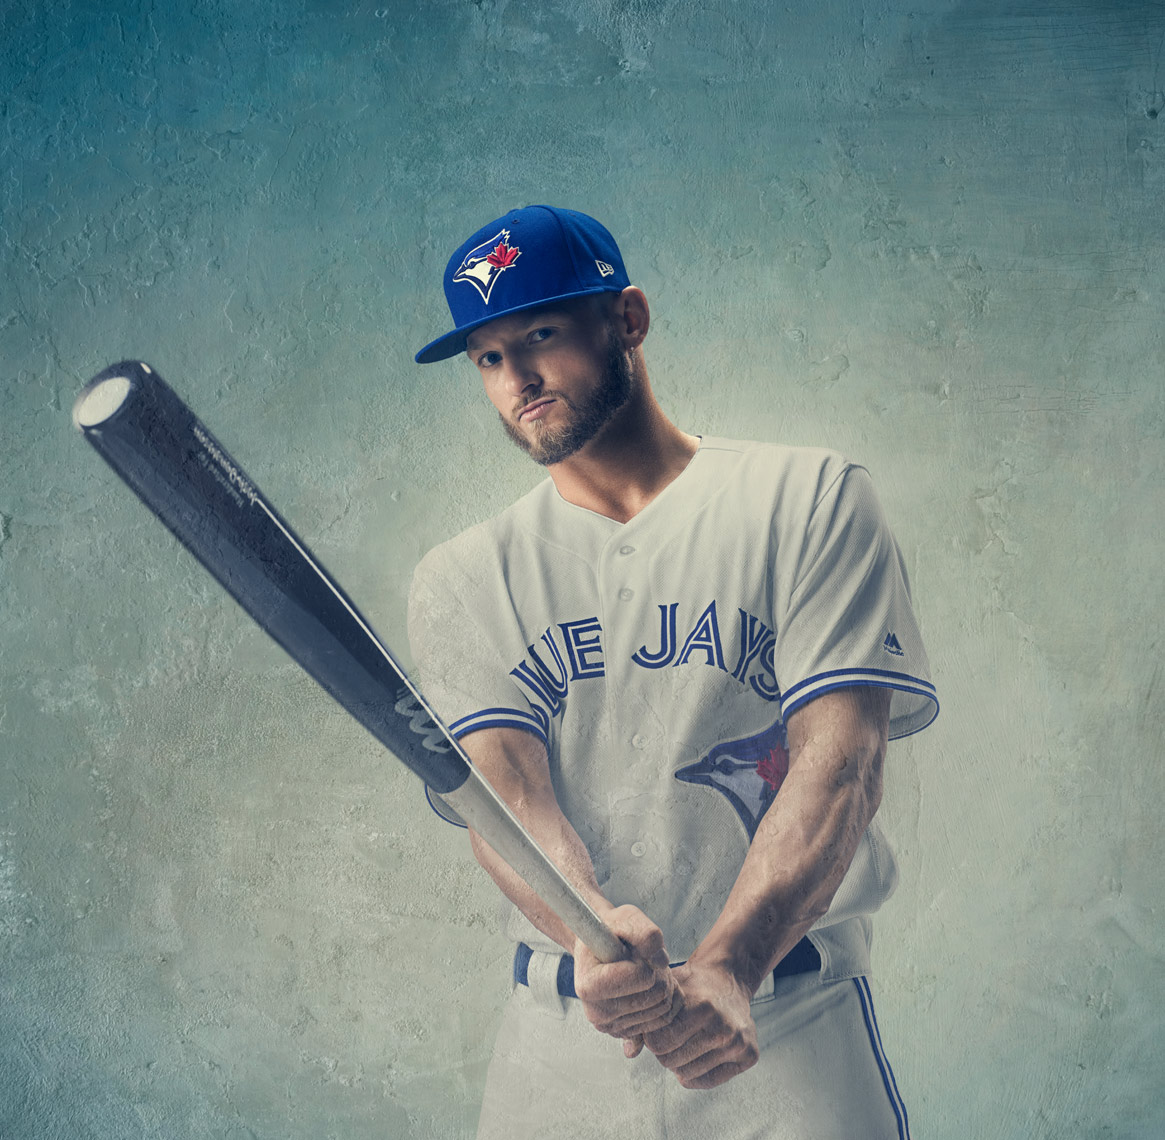 Josh Donaldson by Tim Tadder for New Era Cap Co MLB, Braves, Blue Jays